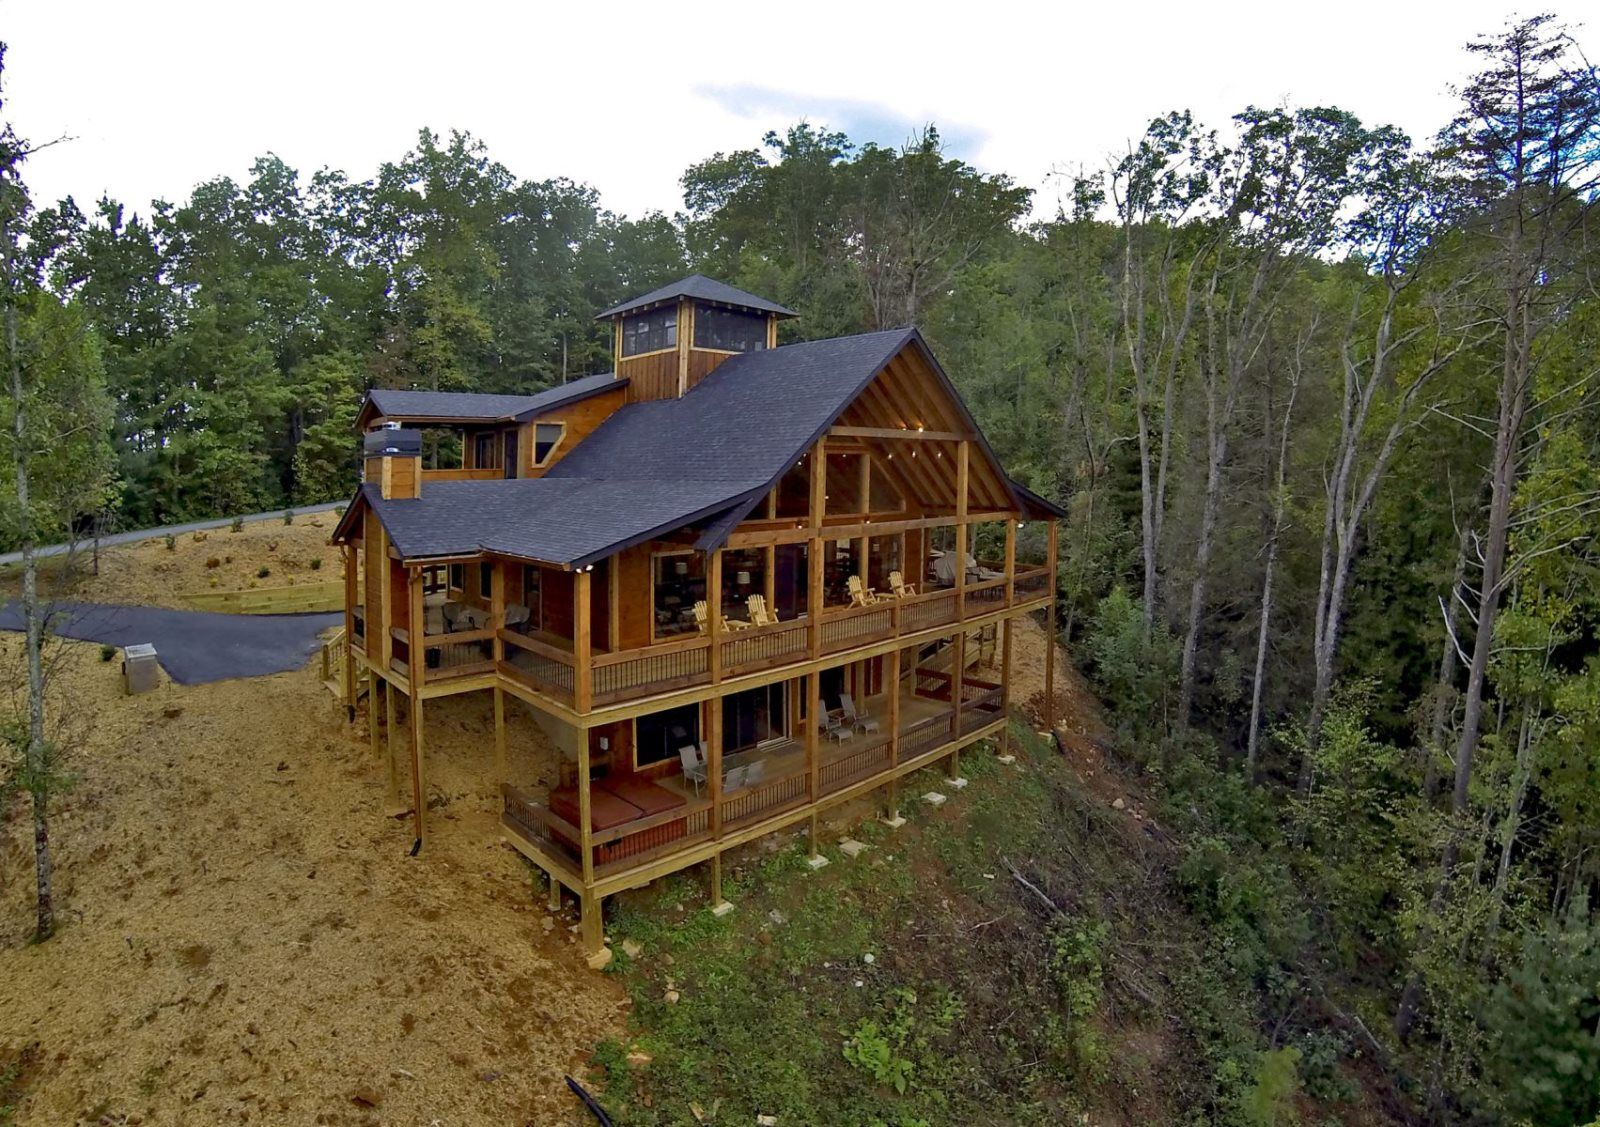 Crow's Nest Wheelchair Accessible Cabin Rental in Blue